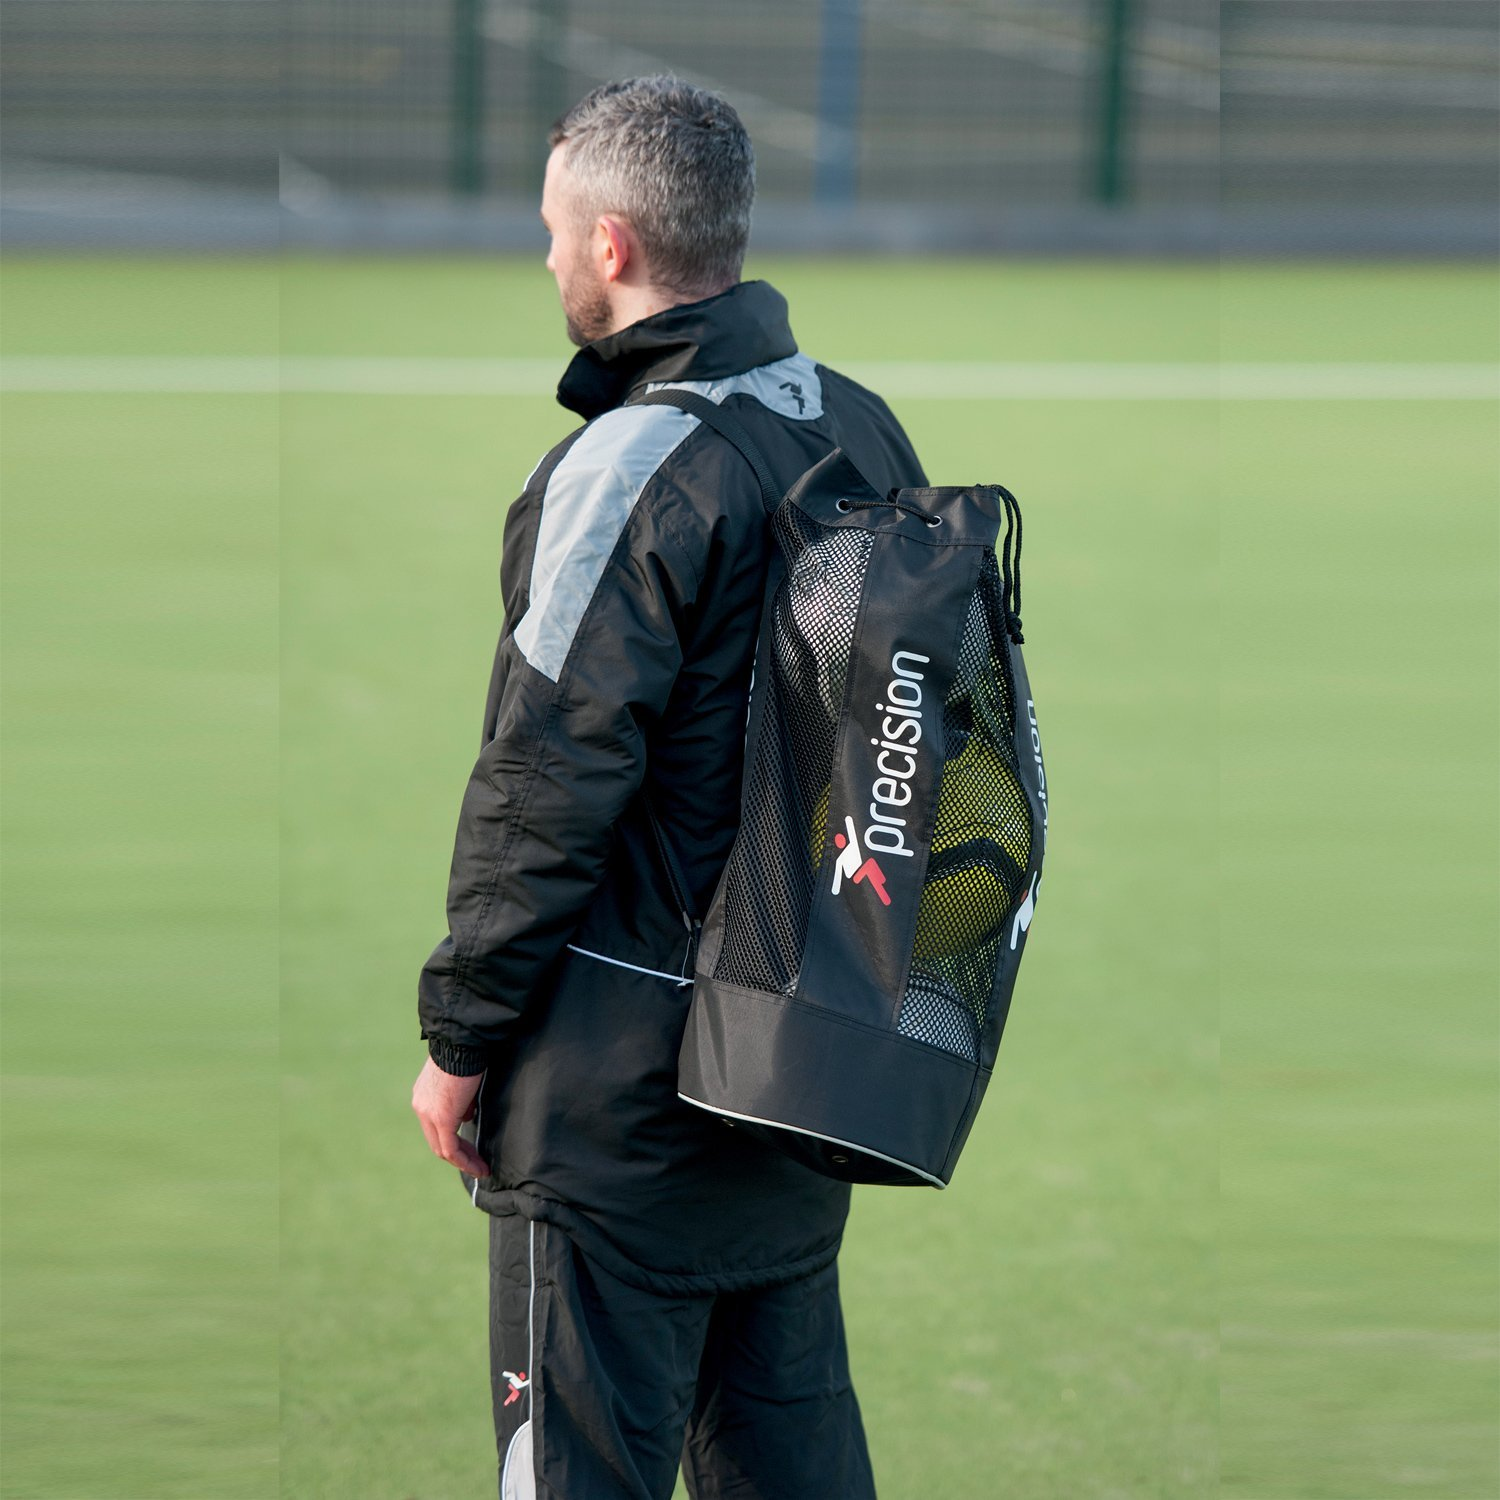 Precision Training Tubular Ball Bag With Shoulder Strap Holds 3 Footballs rrp£14 16/2-2